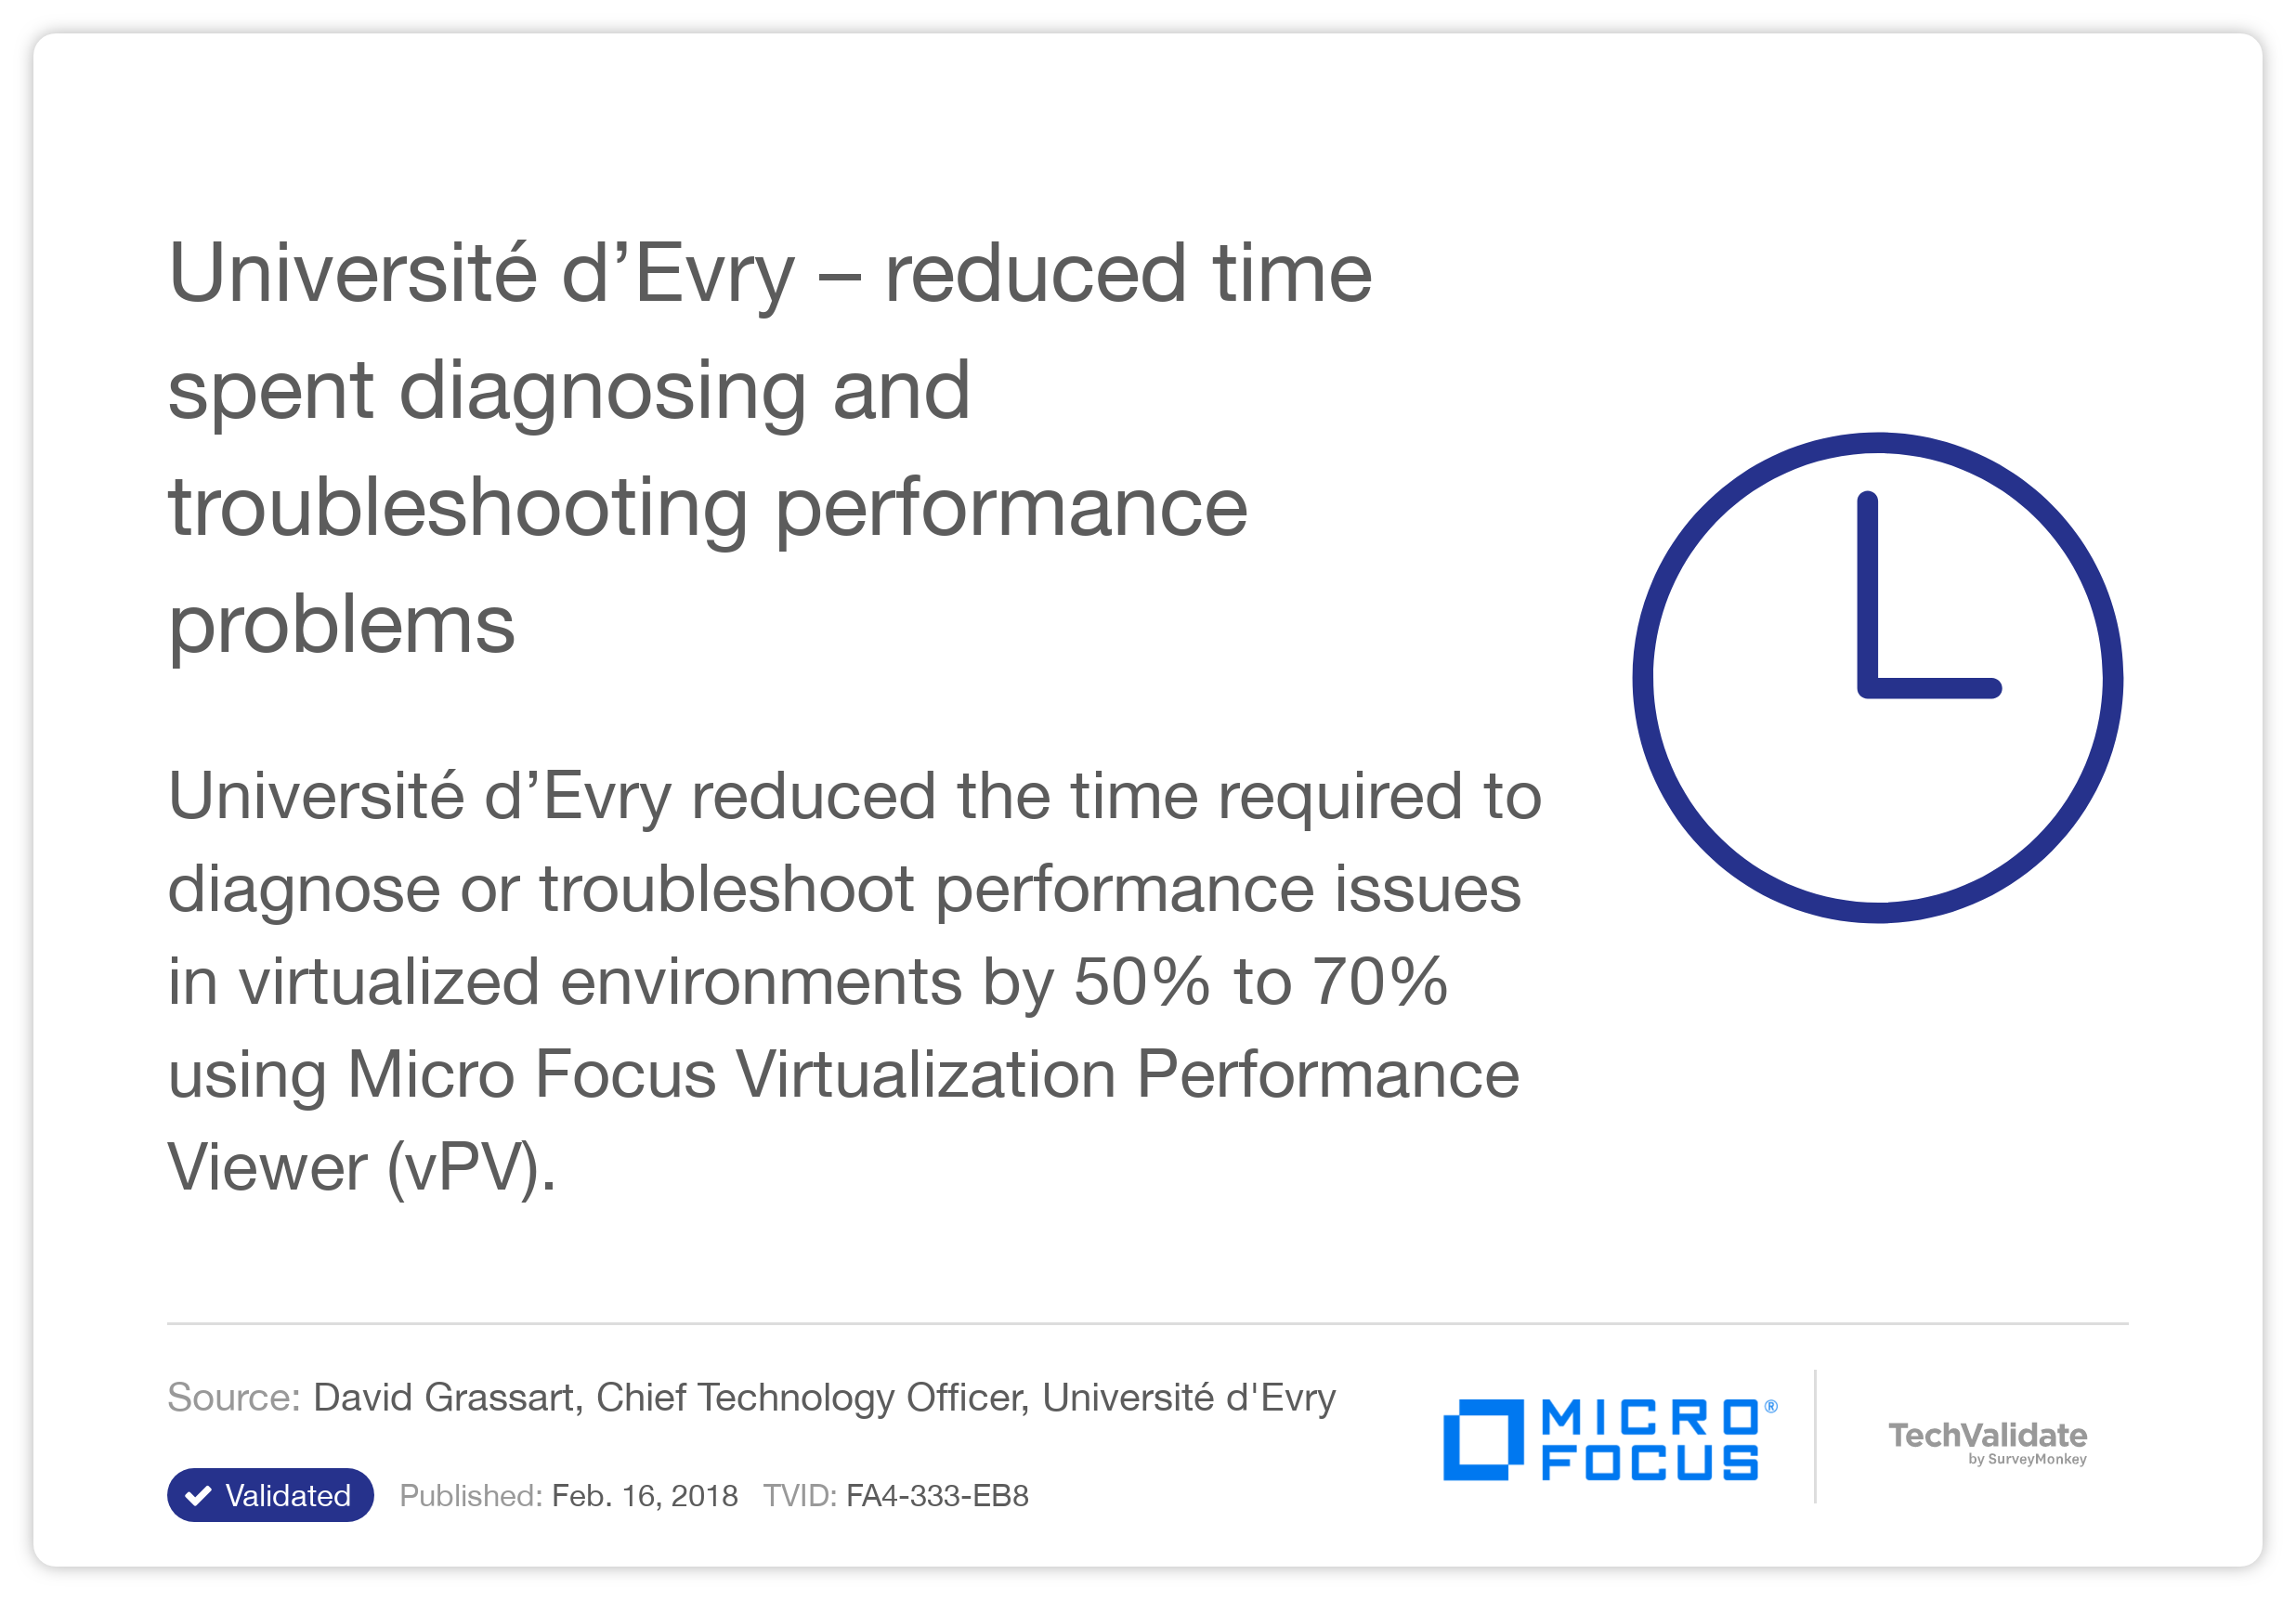 Université d'Evry - reduced time spent diagnosing and troubleshooting performance problems with HP vPV